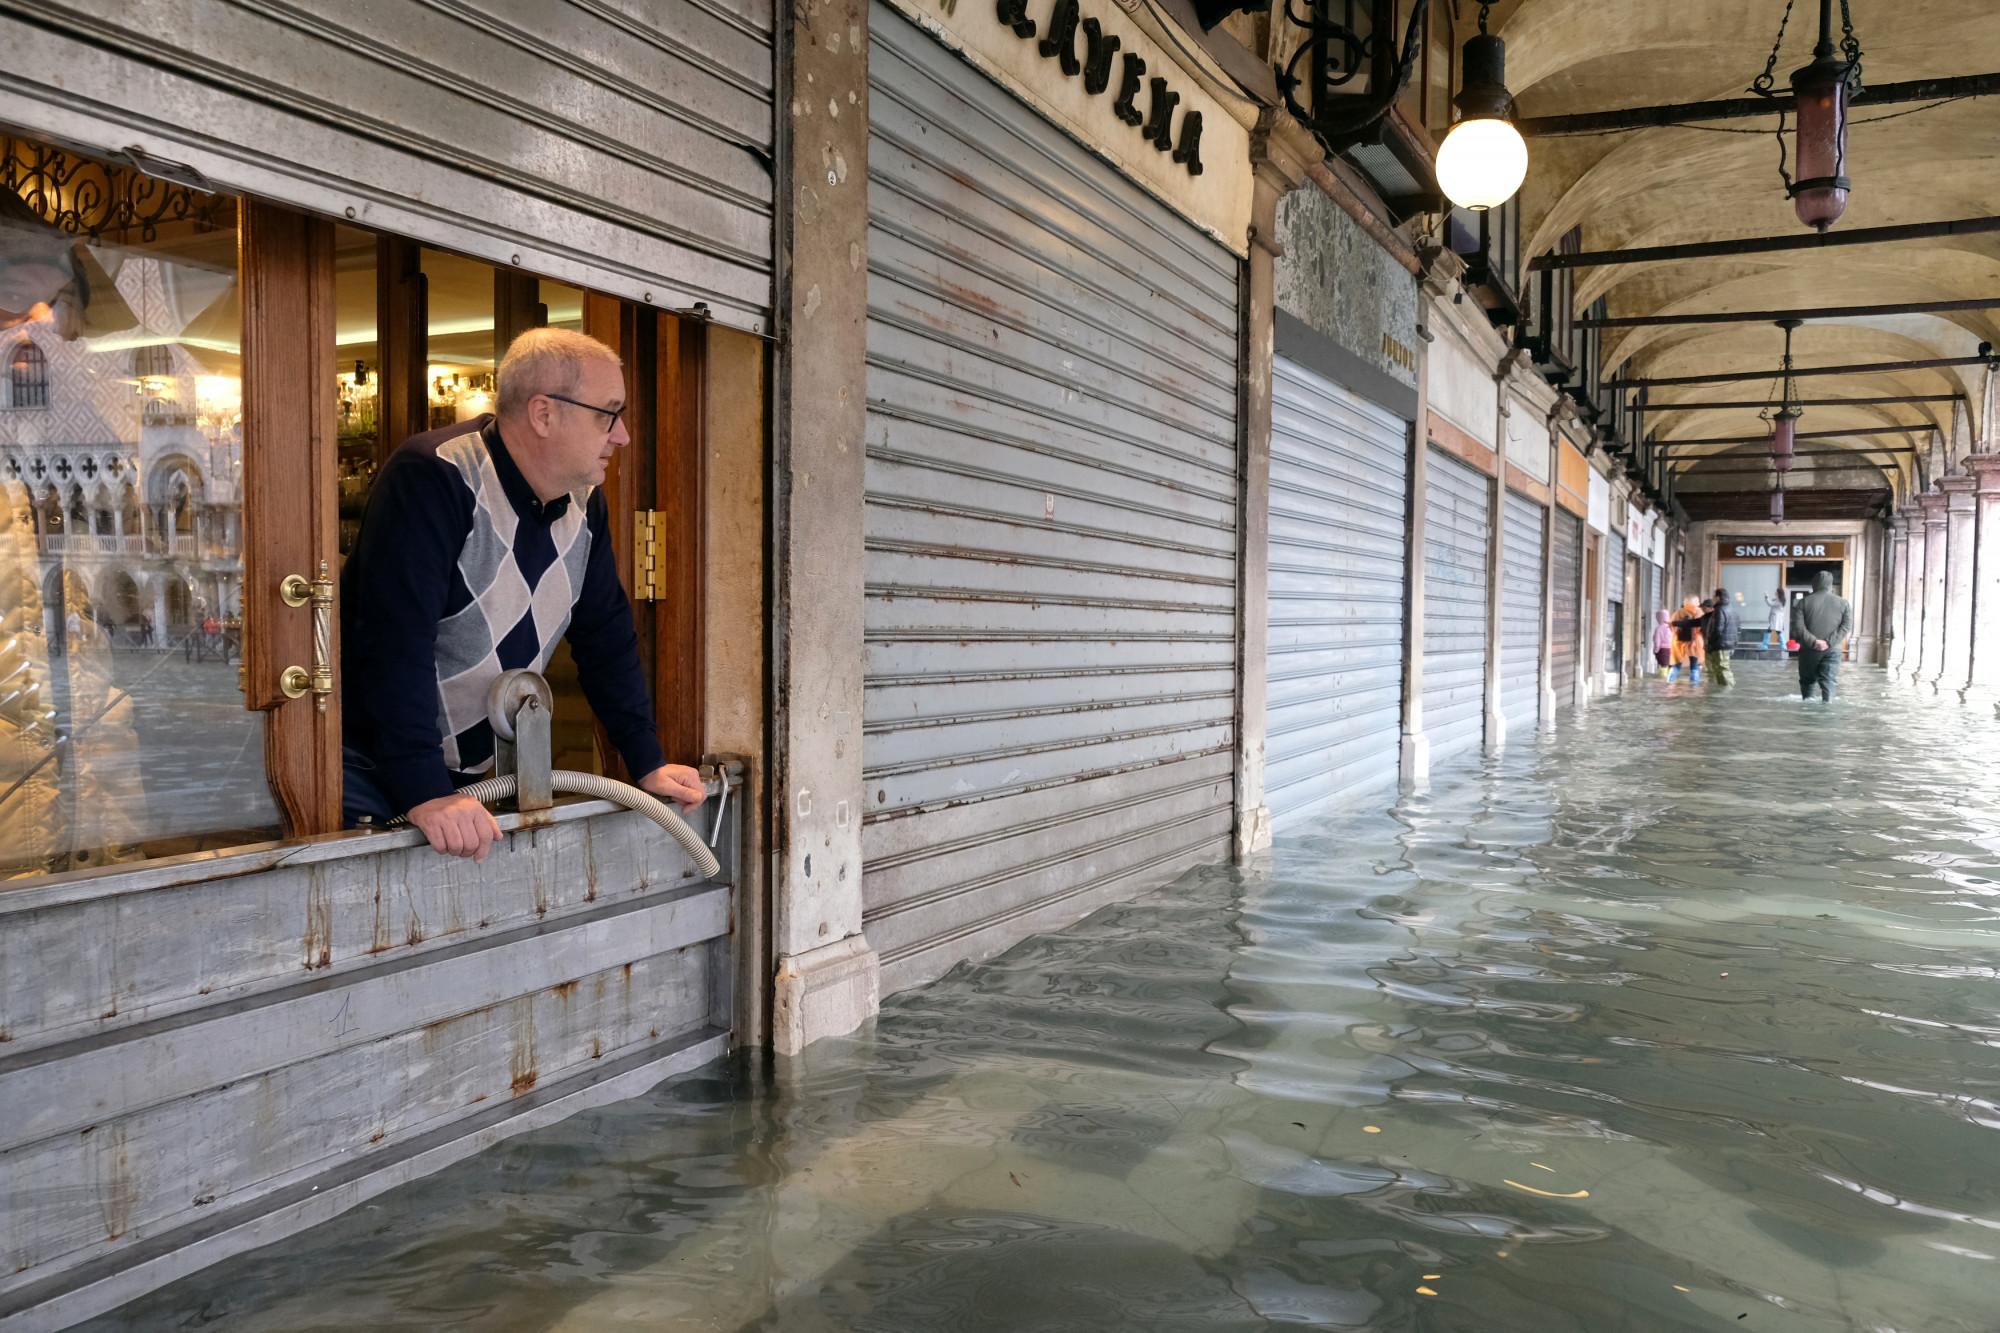 Man, Venice flooding